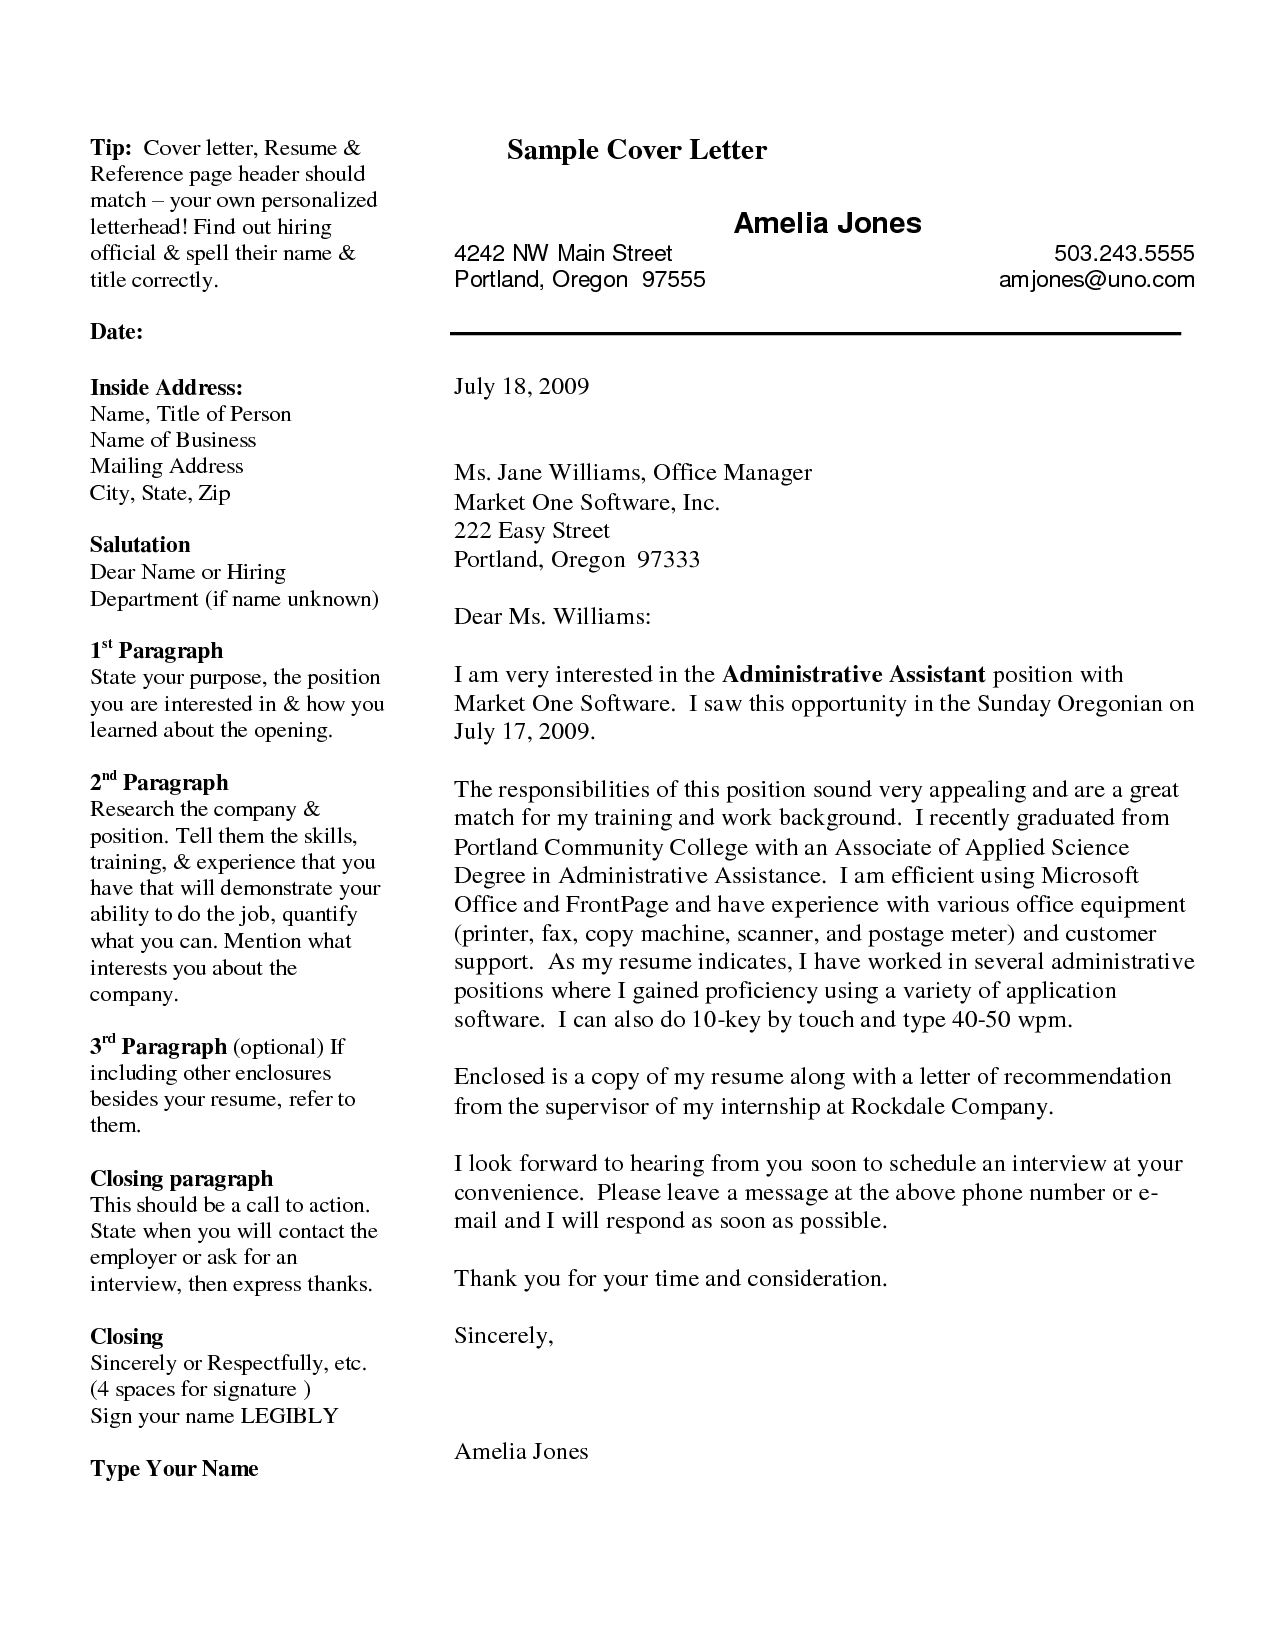 Professional Resume Cover Letter SamplesProfessional Resume Cover Letter  Samples Professional Resume Cover Letter Samples,how  Example Resume Cover Letters